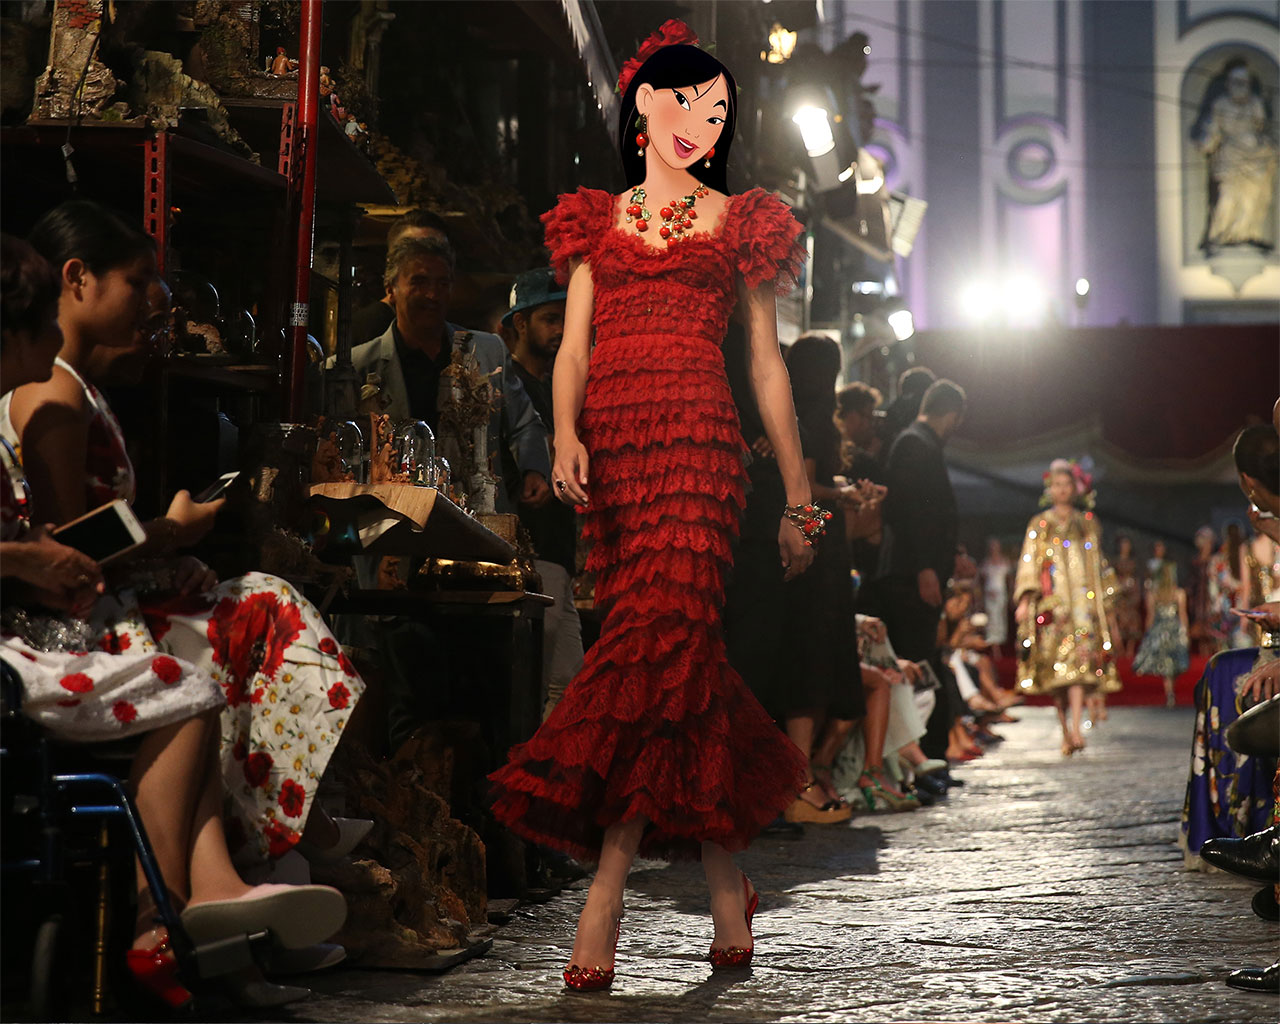 Tabitha Simmons as Mulan for Dolce & Gabbana. Reflecting the passions, feelings, emotions in all aspects of life through a form of art called Alta Moda. Photographed by FASHION TO MAX, photo edit by Gregory Masouras.